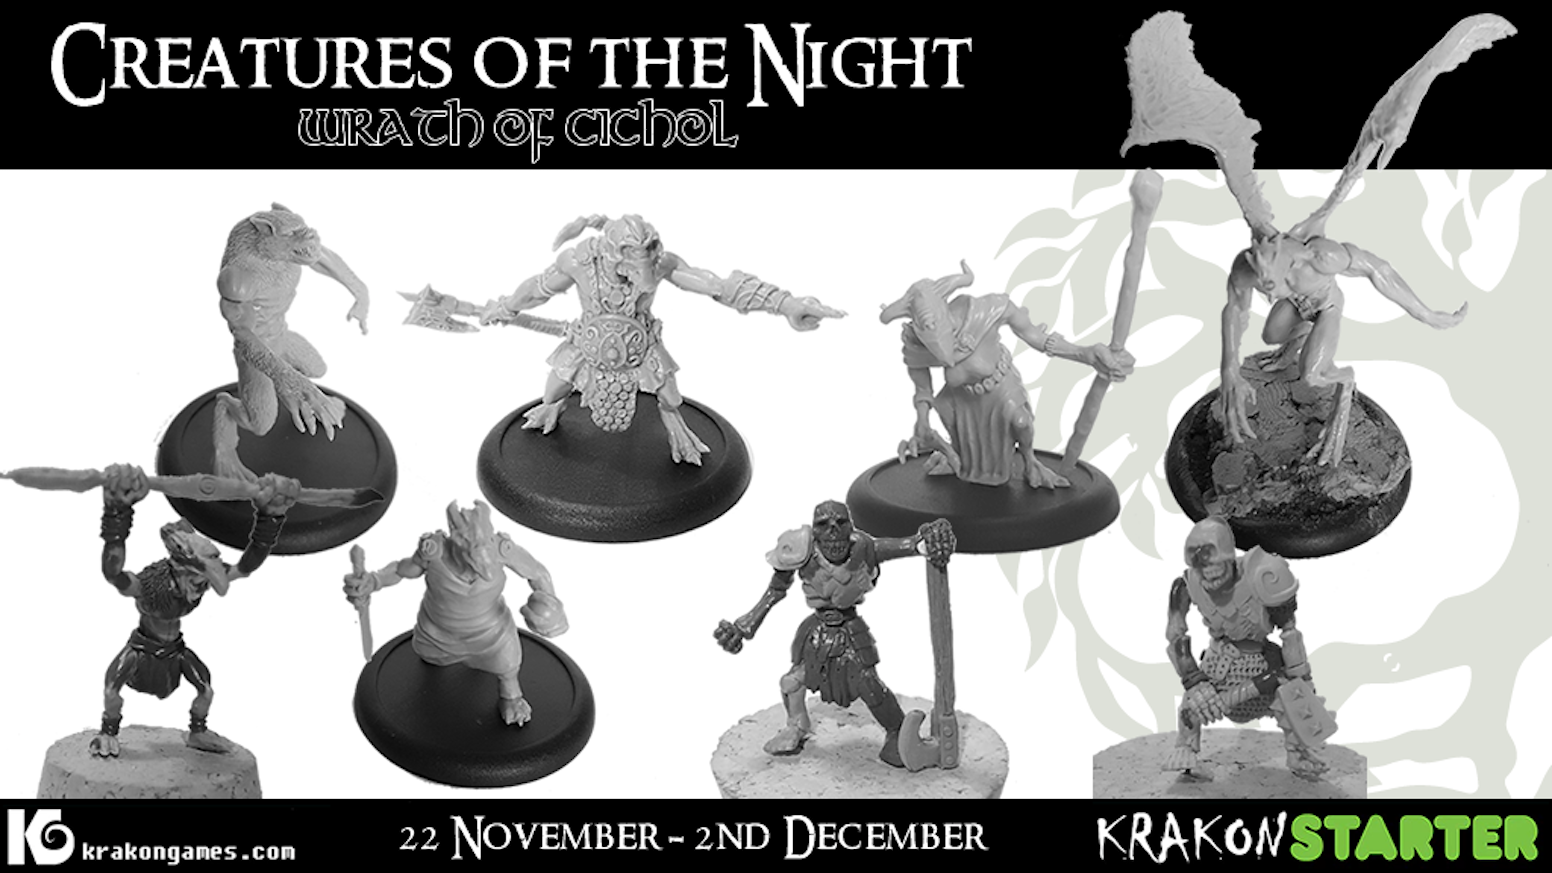 This is the first chapter of the Creatures of the Night series, delivering the first characters of the Fomorians and Partholóin.